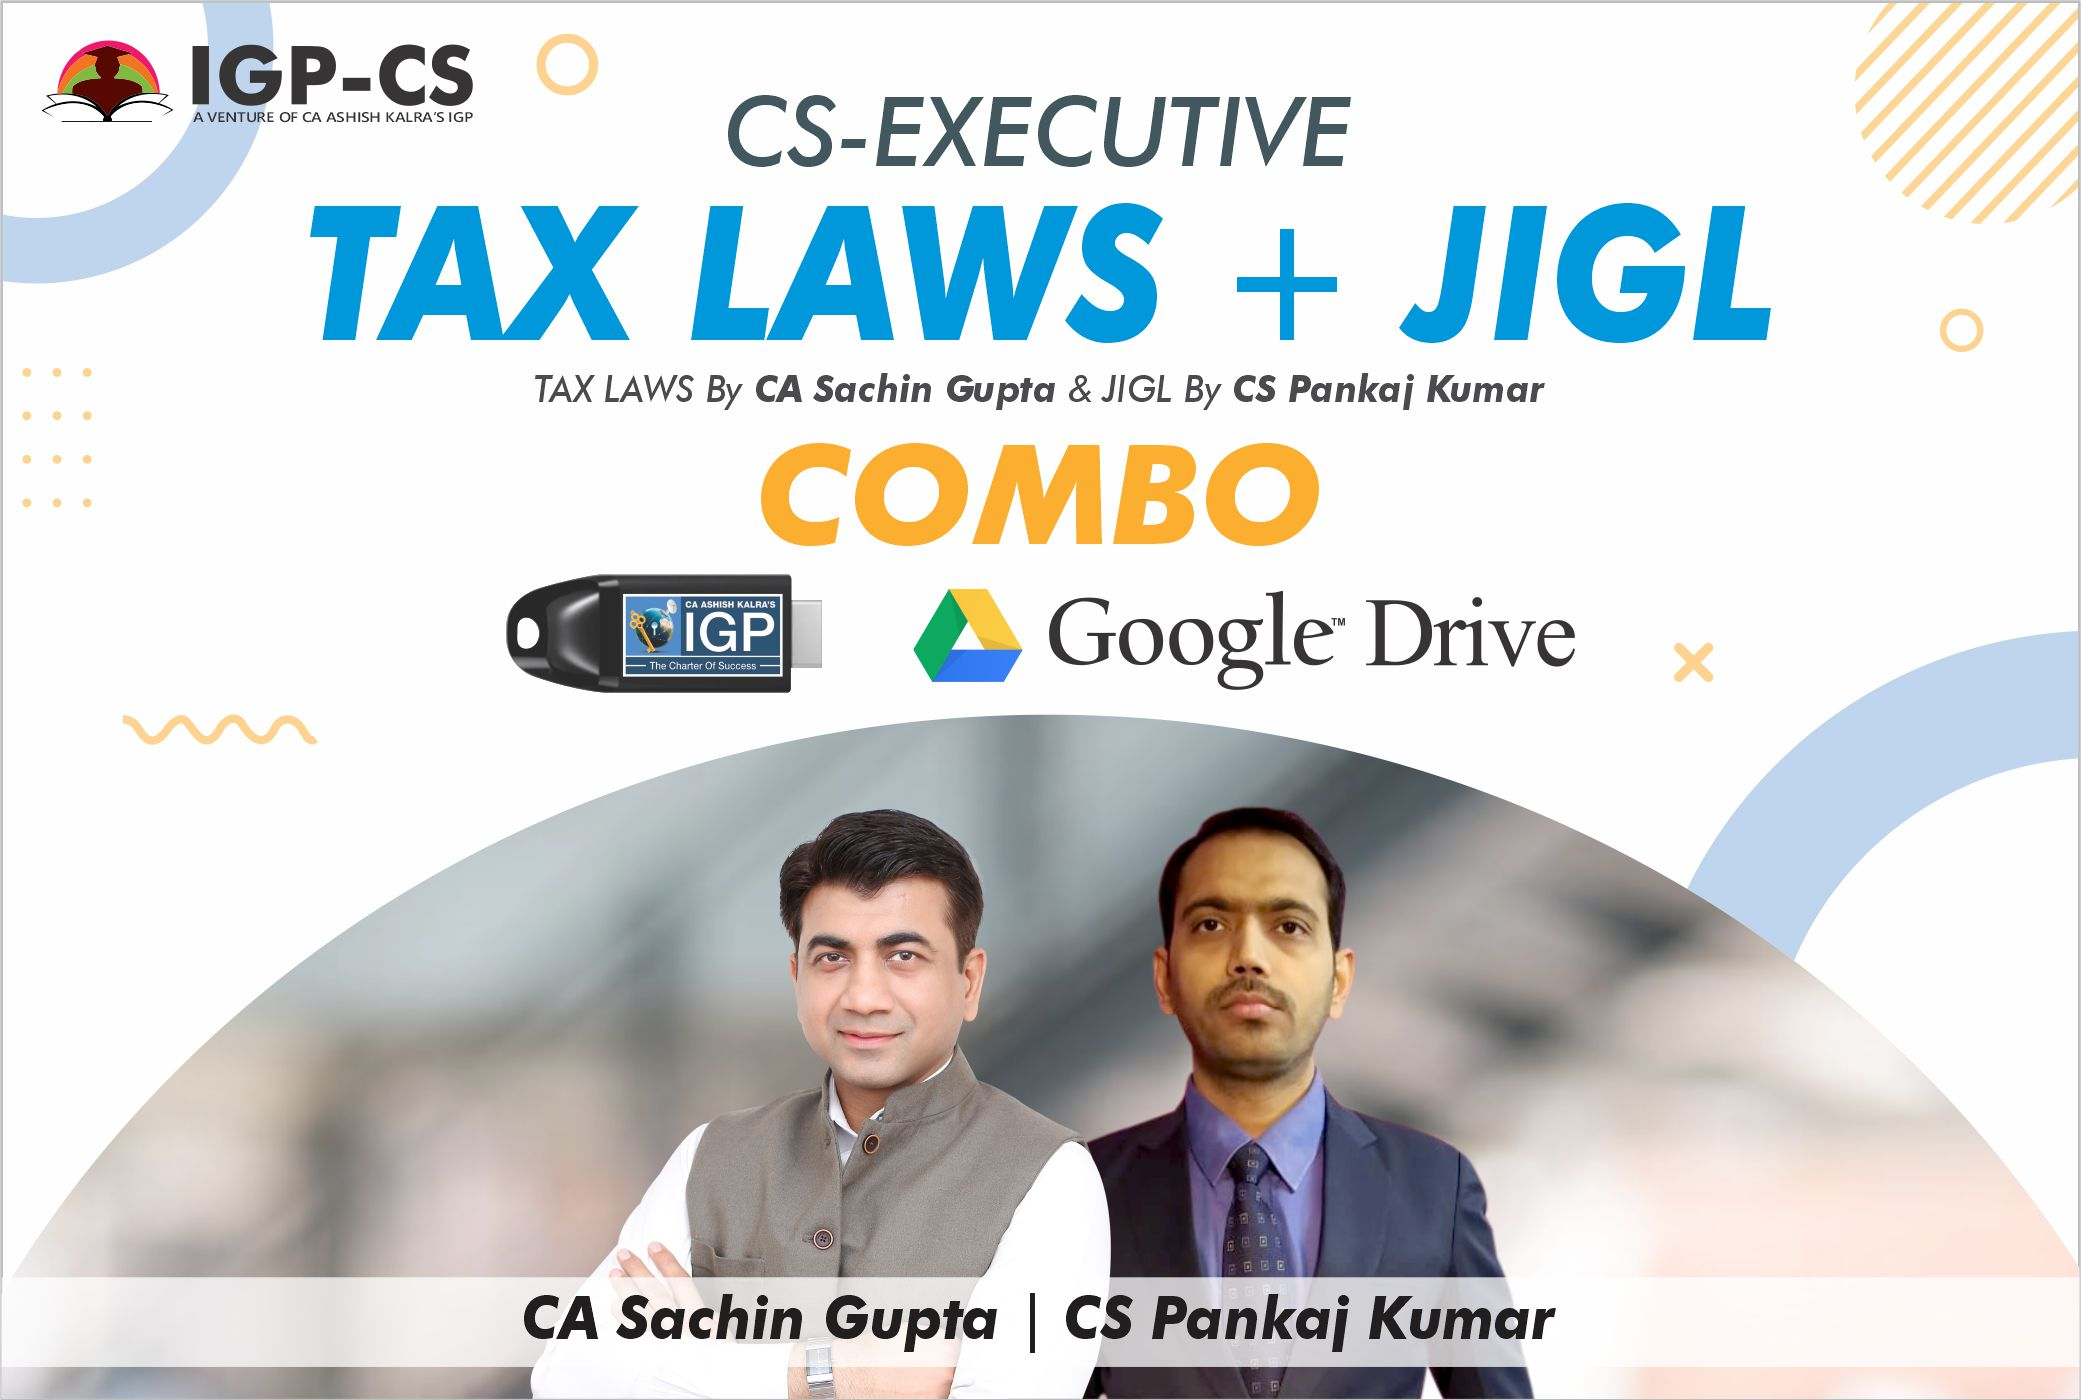 CS Executive - JIGL & Tax Law Combo